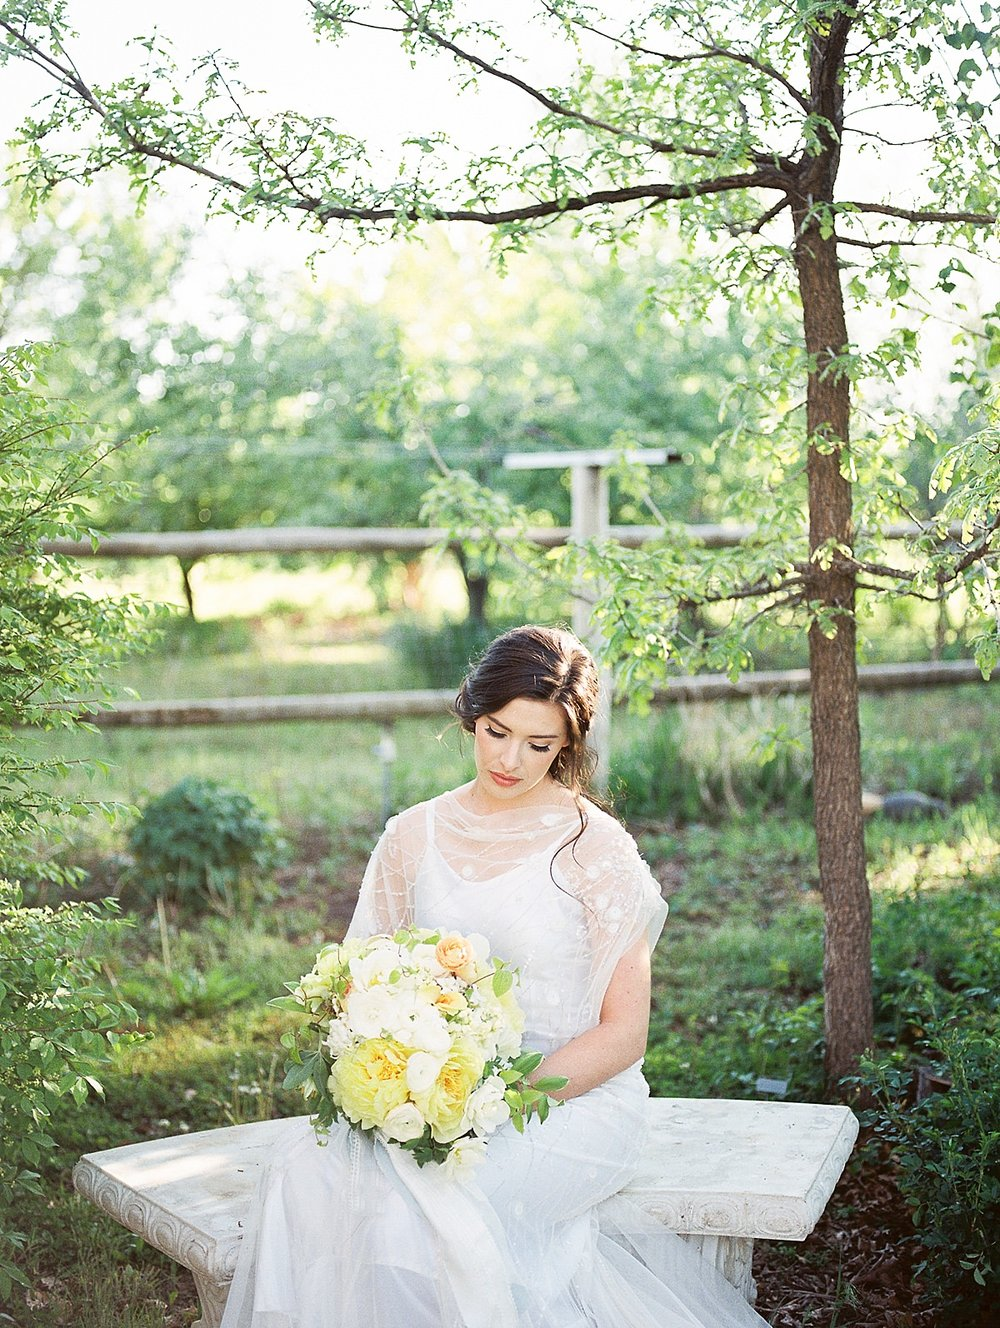 SUNVALLEYWEDDINGPHOTOGRAPHER